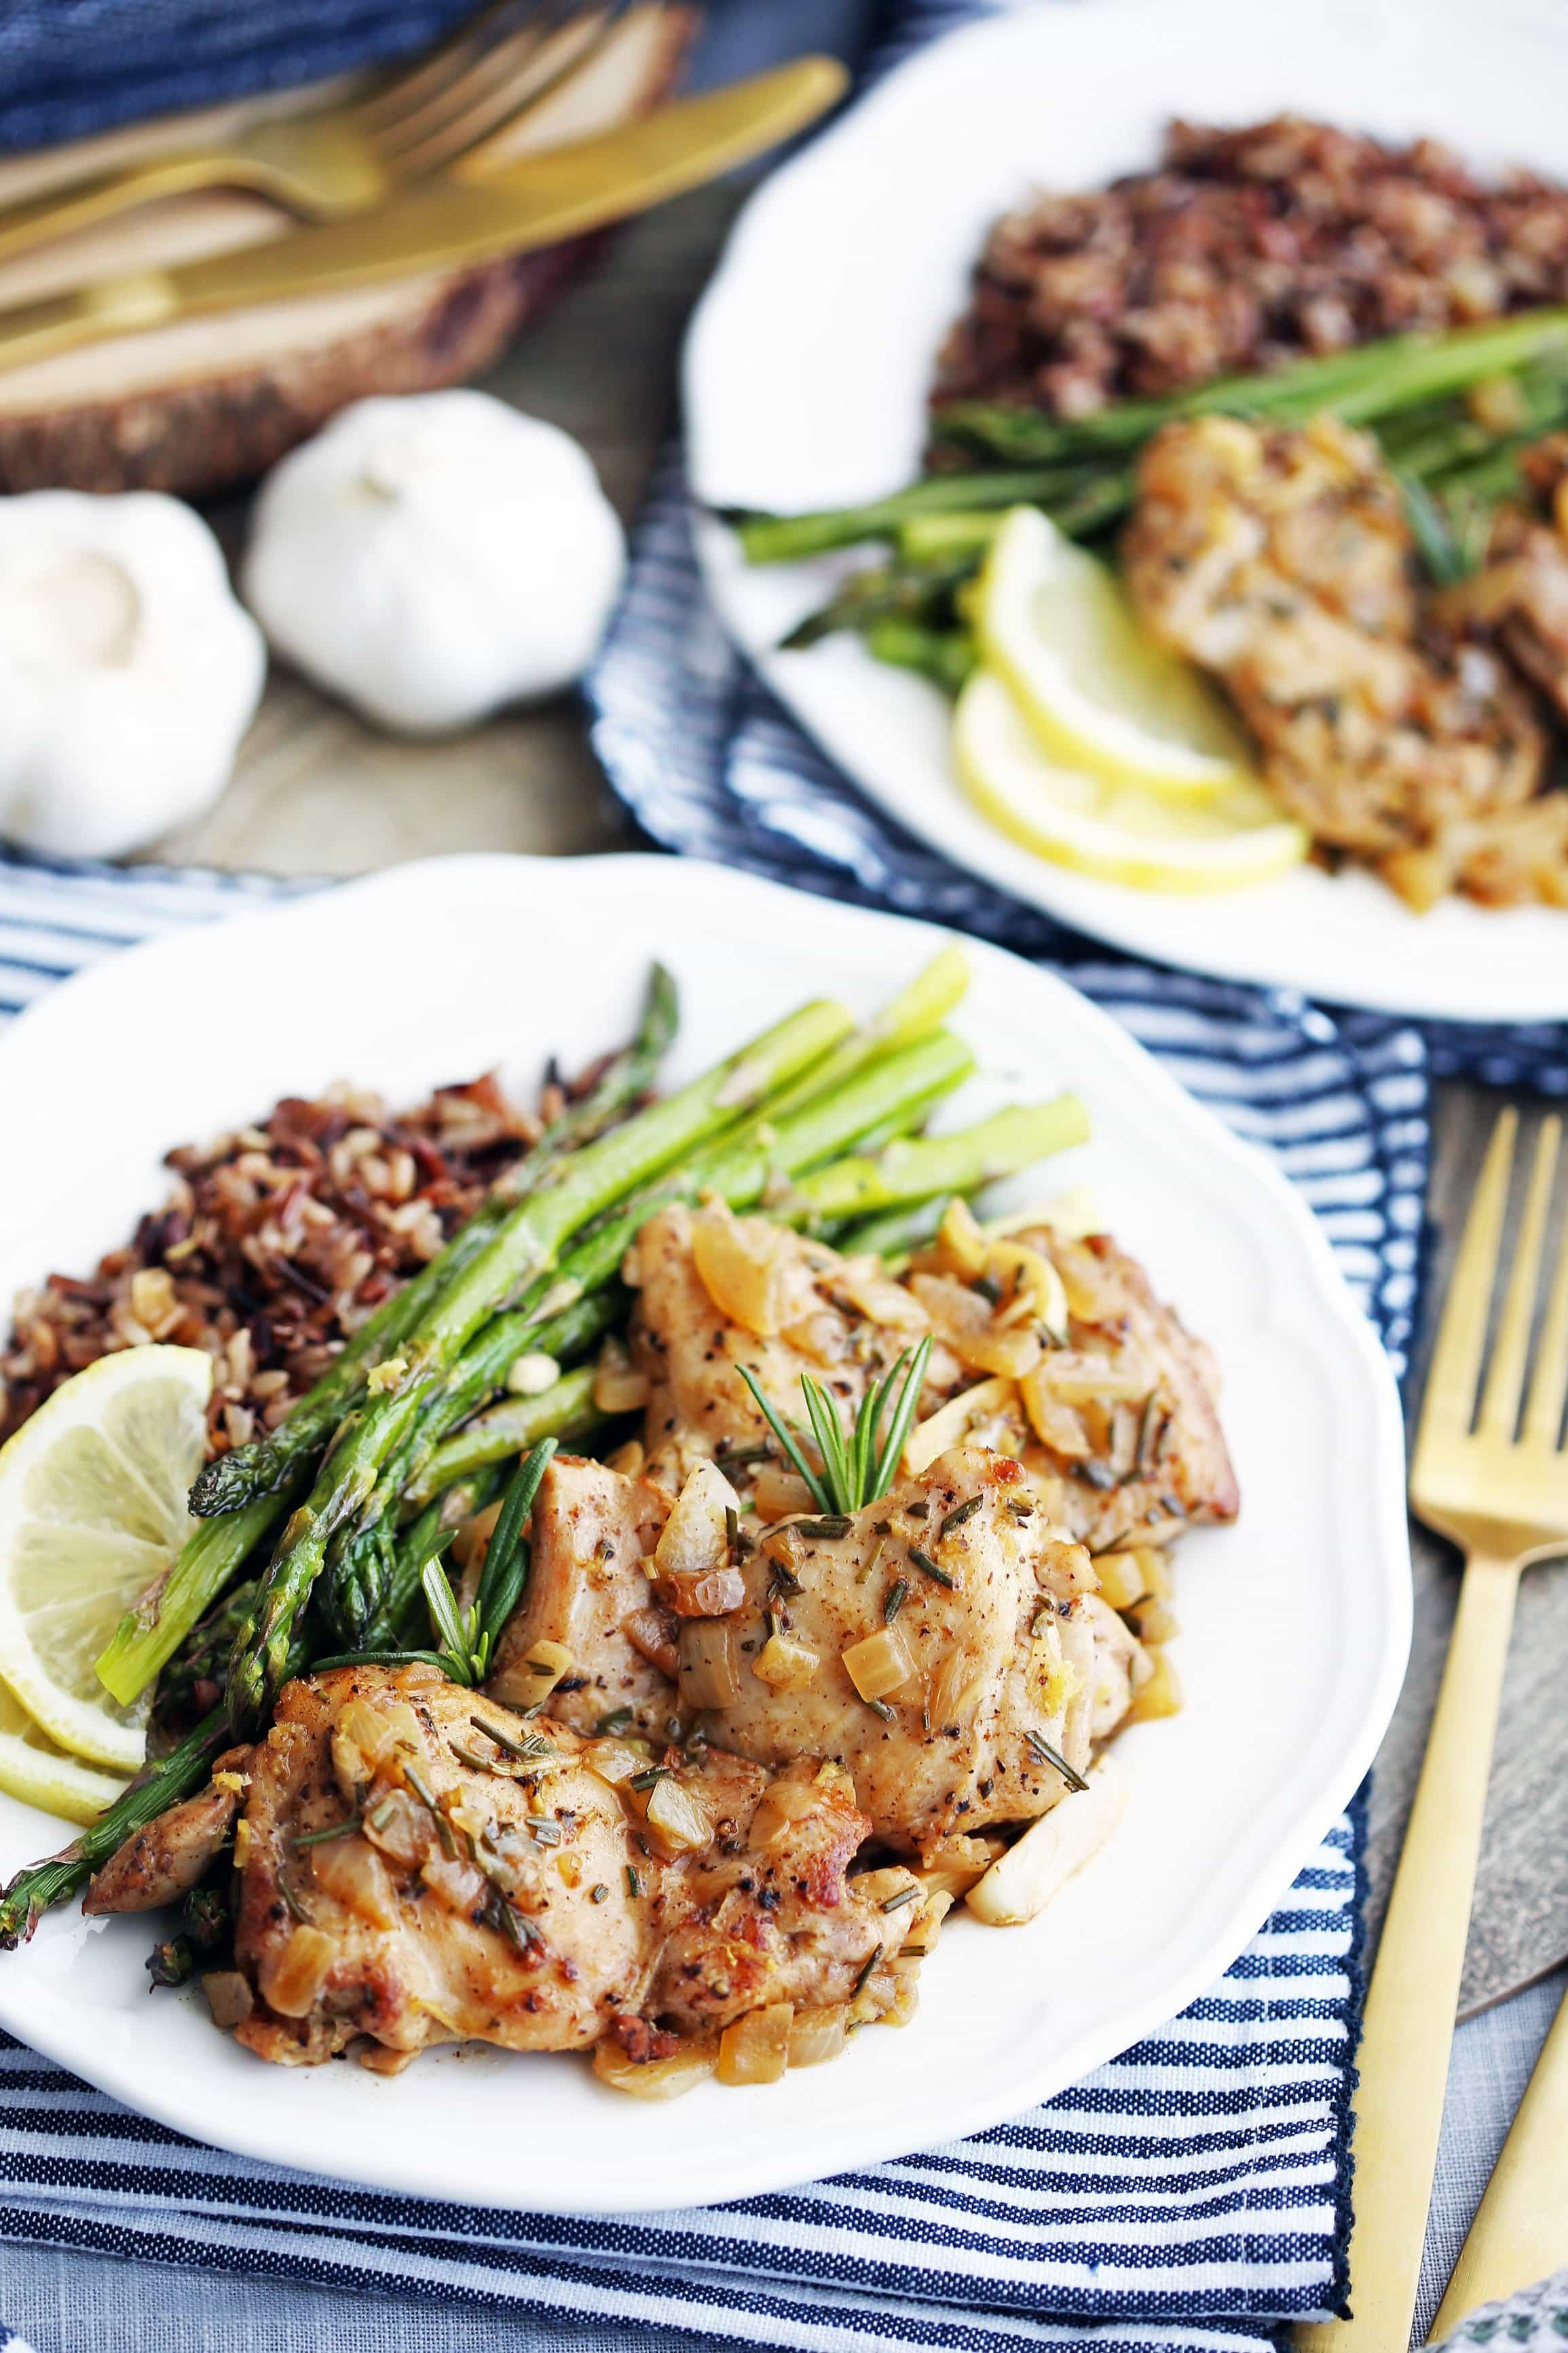 A white plate containing rosemary garlic chicken, roasted asparagus, and wild rice.